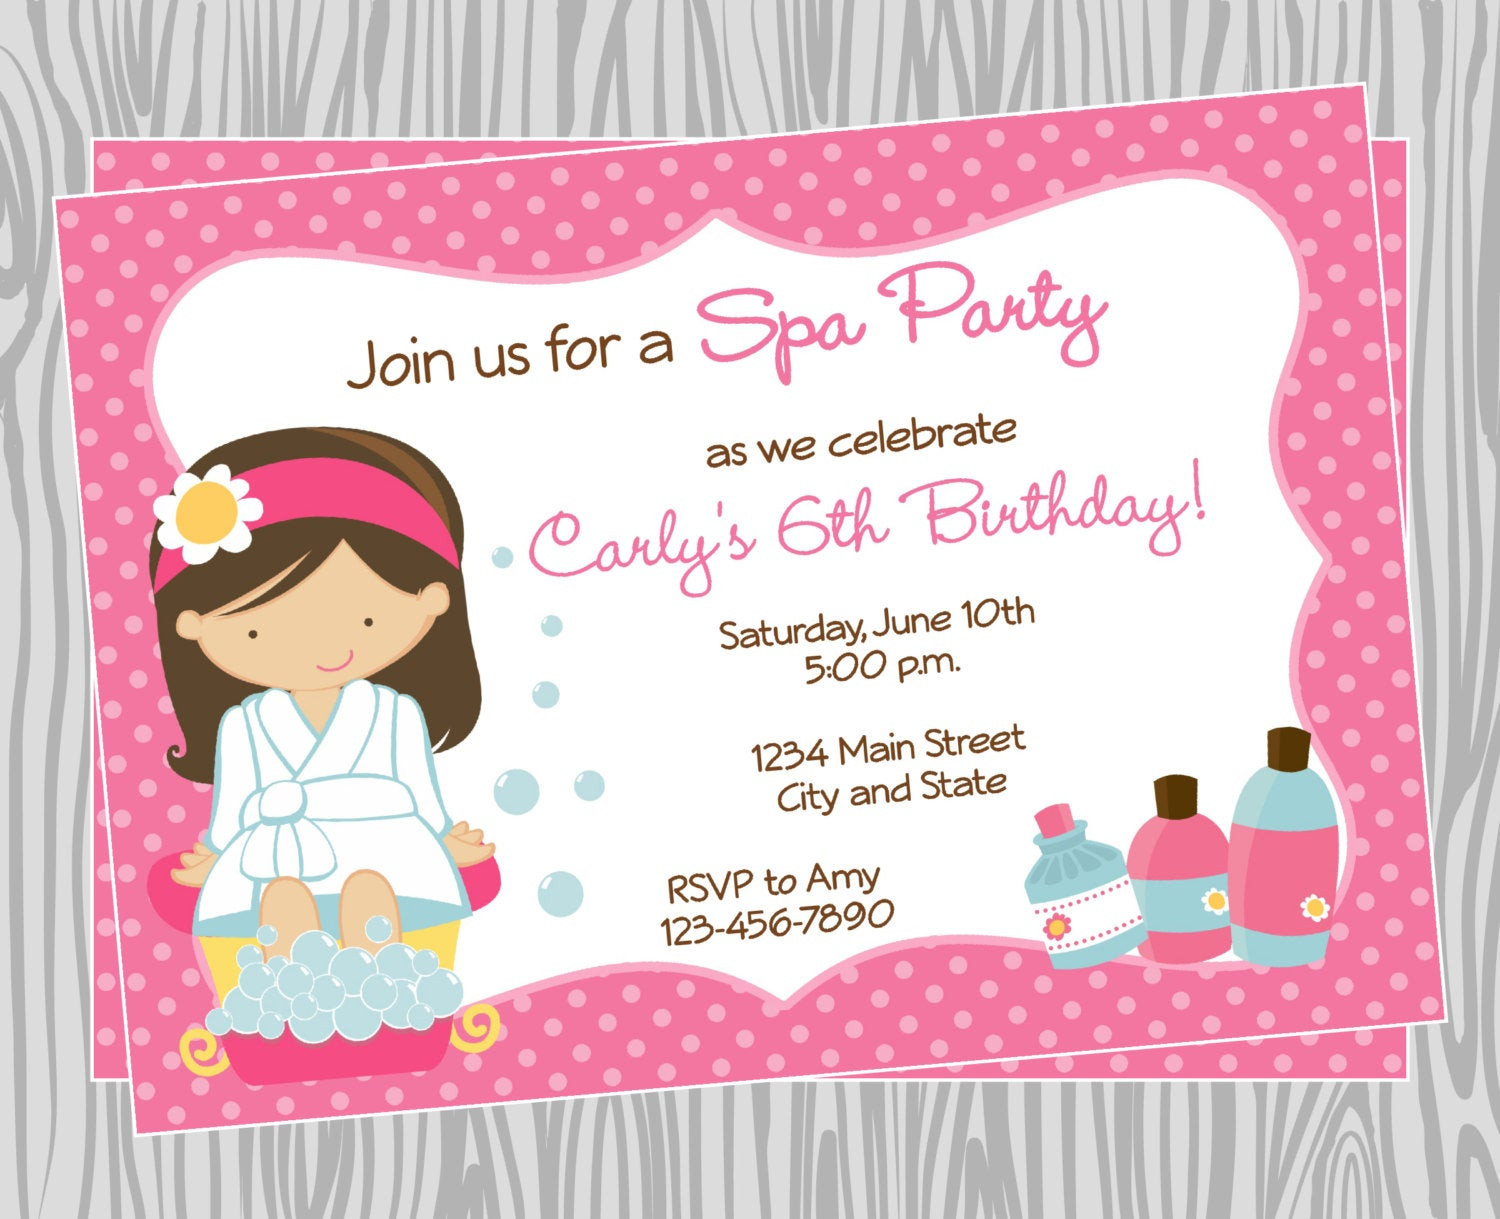 Best ideas about Spa Birthday Invitations . Save or Pin DIY Girl Spa Birthday Party Invitation 4 Coordinating Items Now.